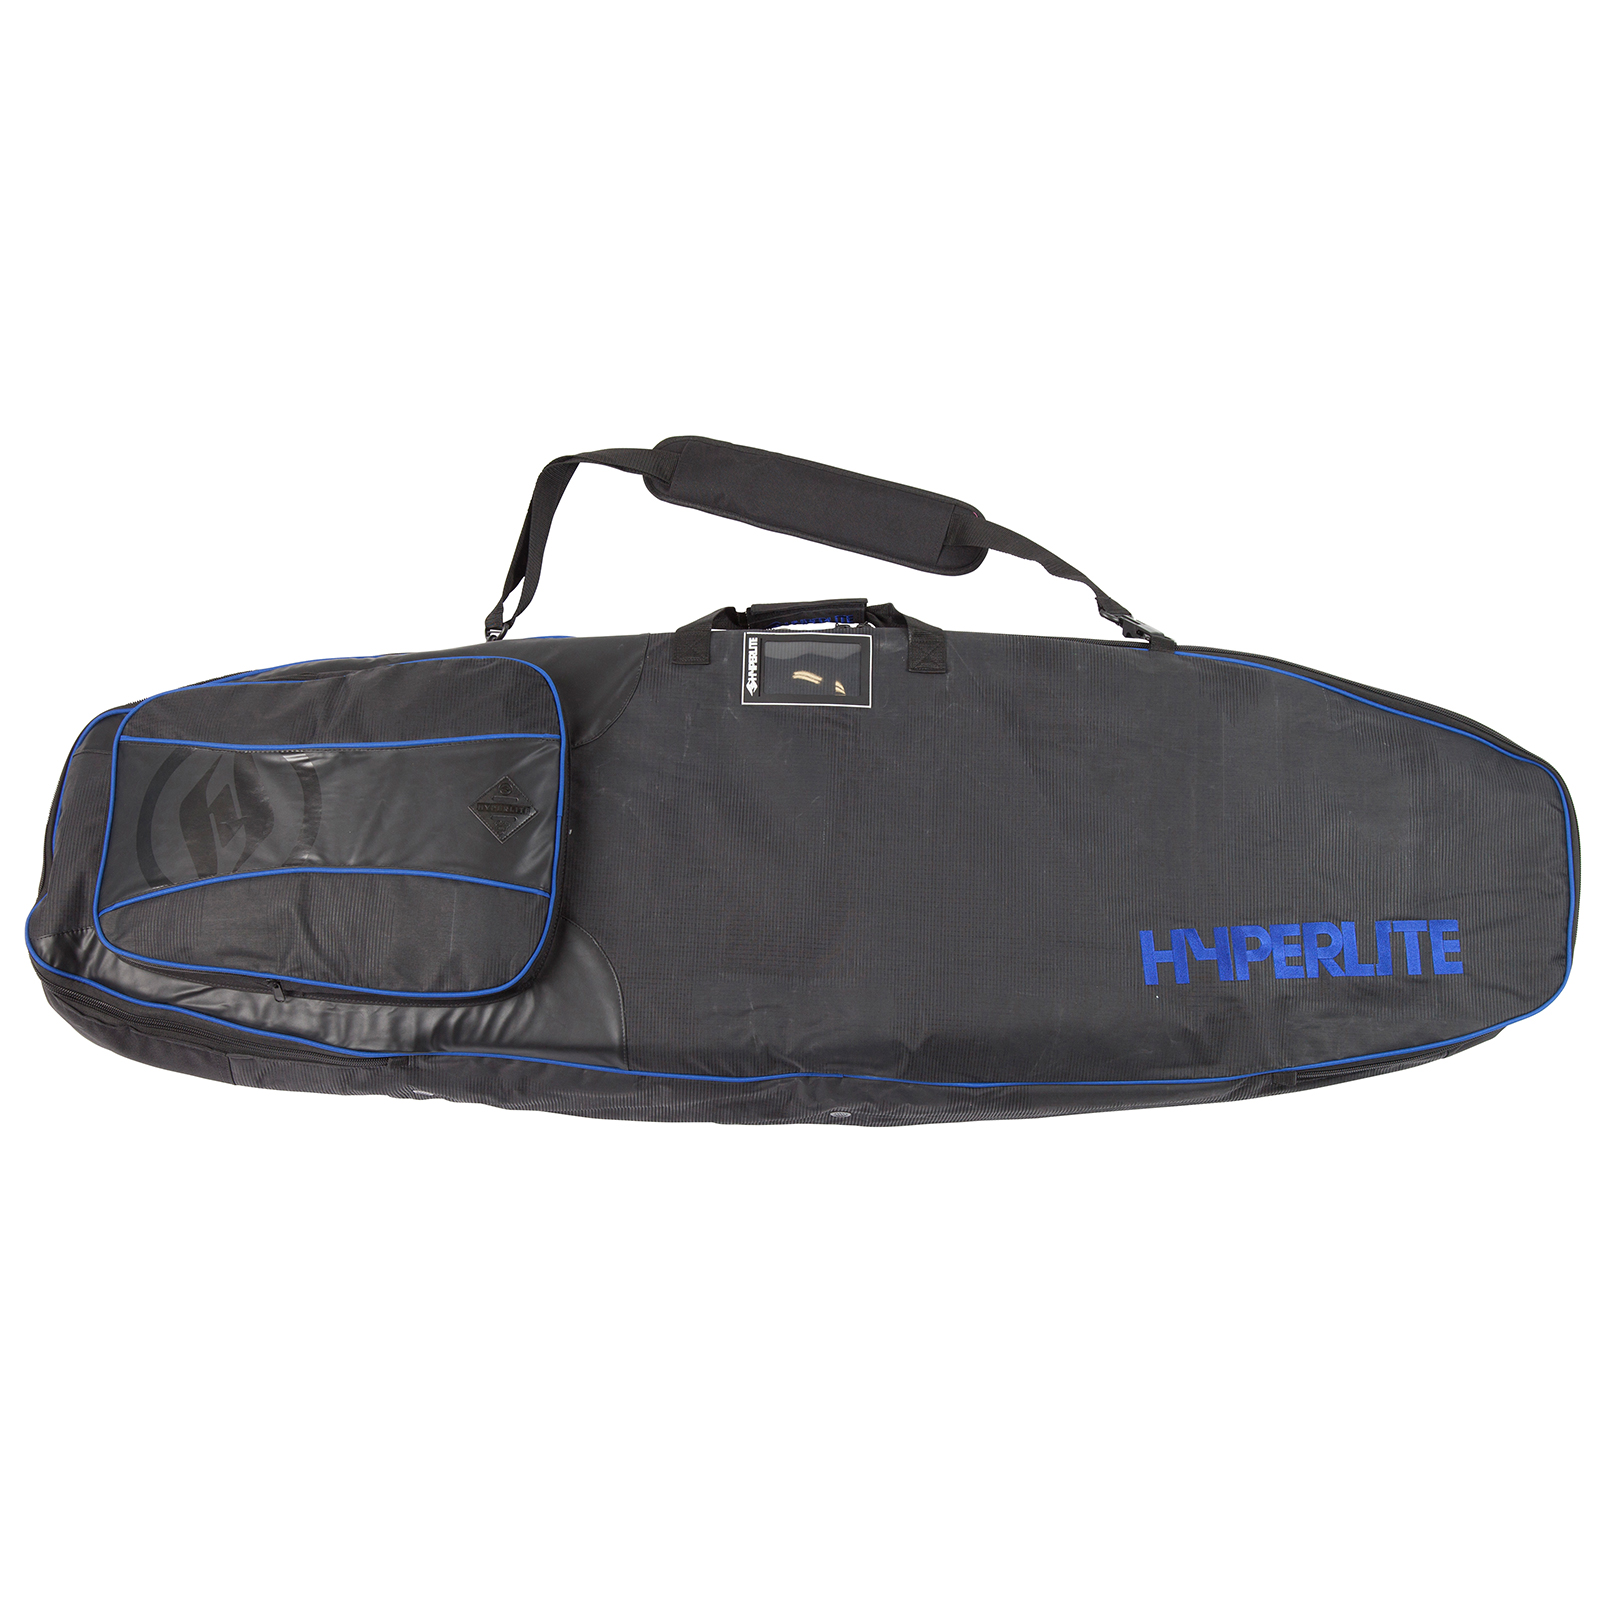 PRODUCER BOARDBAG HYPERLITE 2018